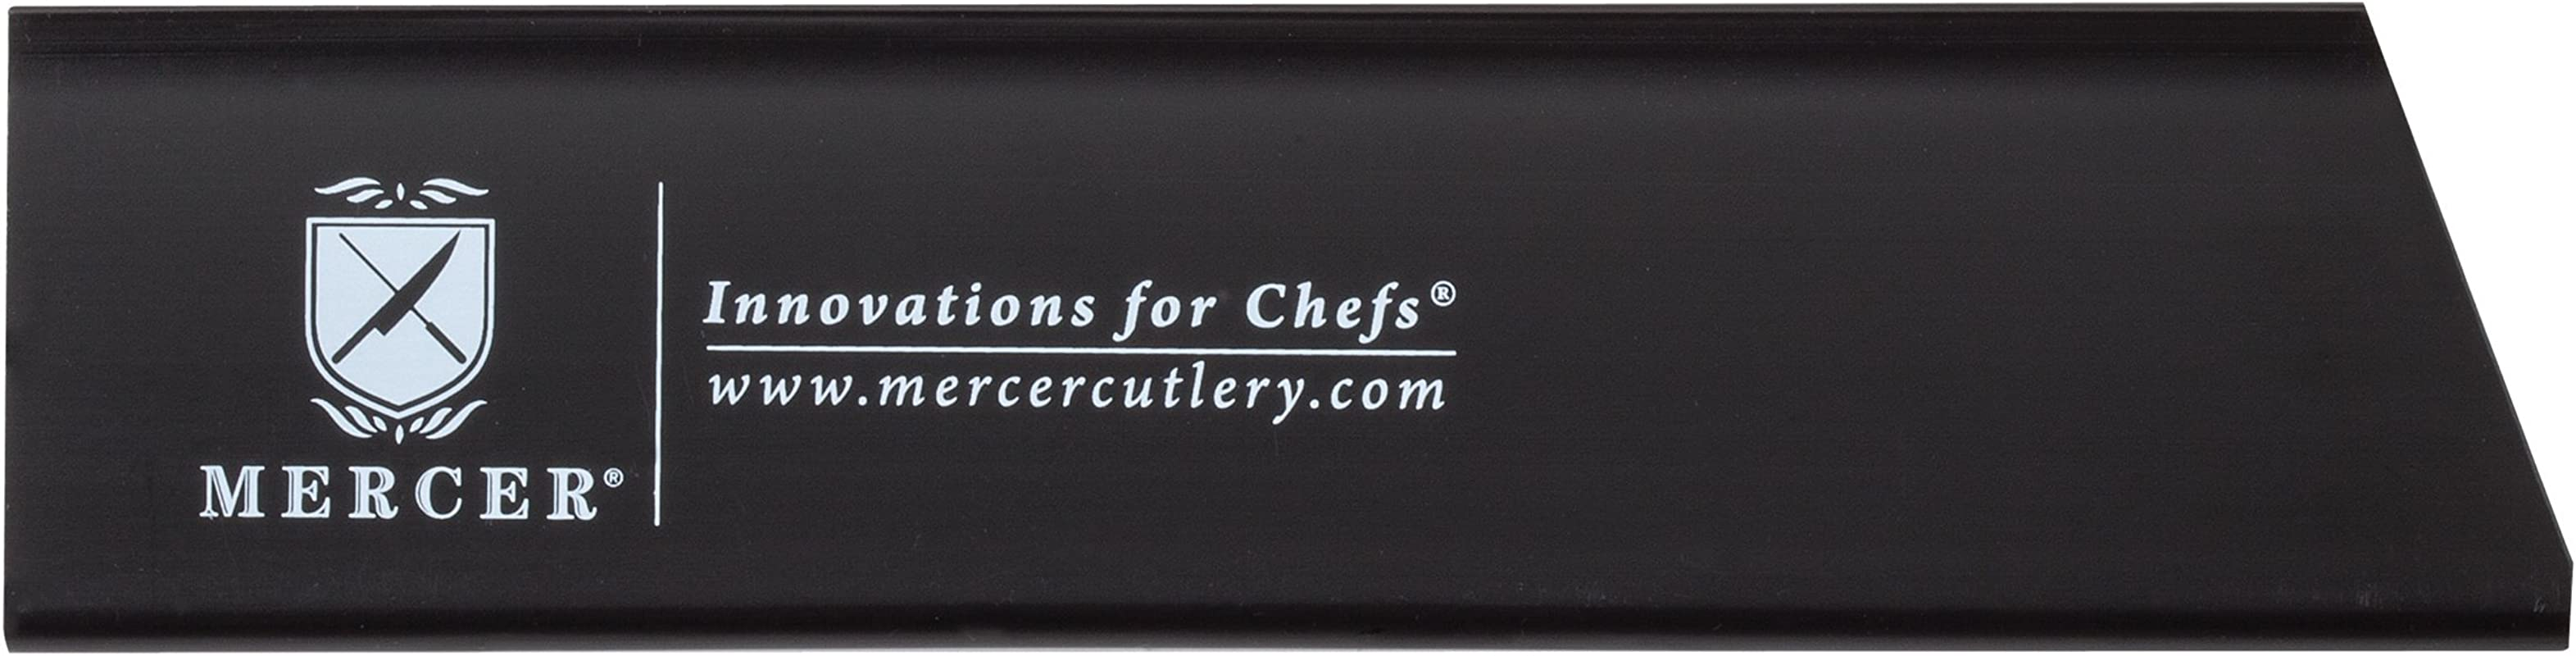 Mercer Culinary Knife Guard 8 Inch X 2 Inch